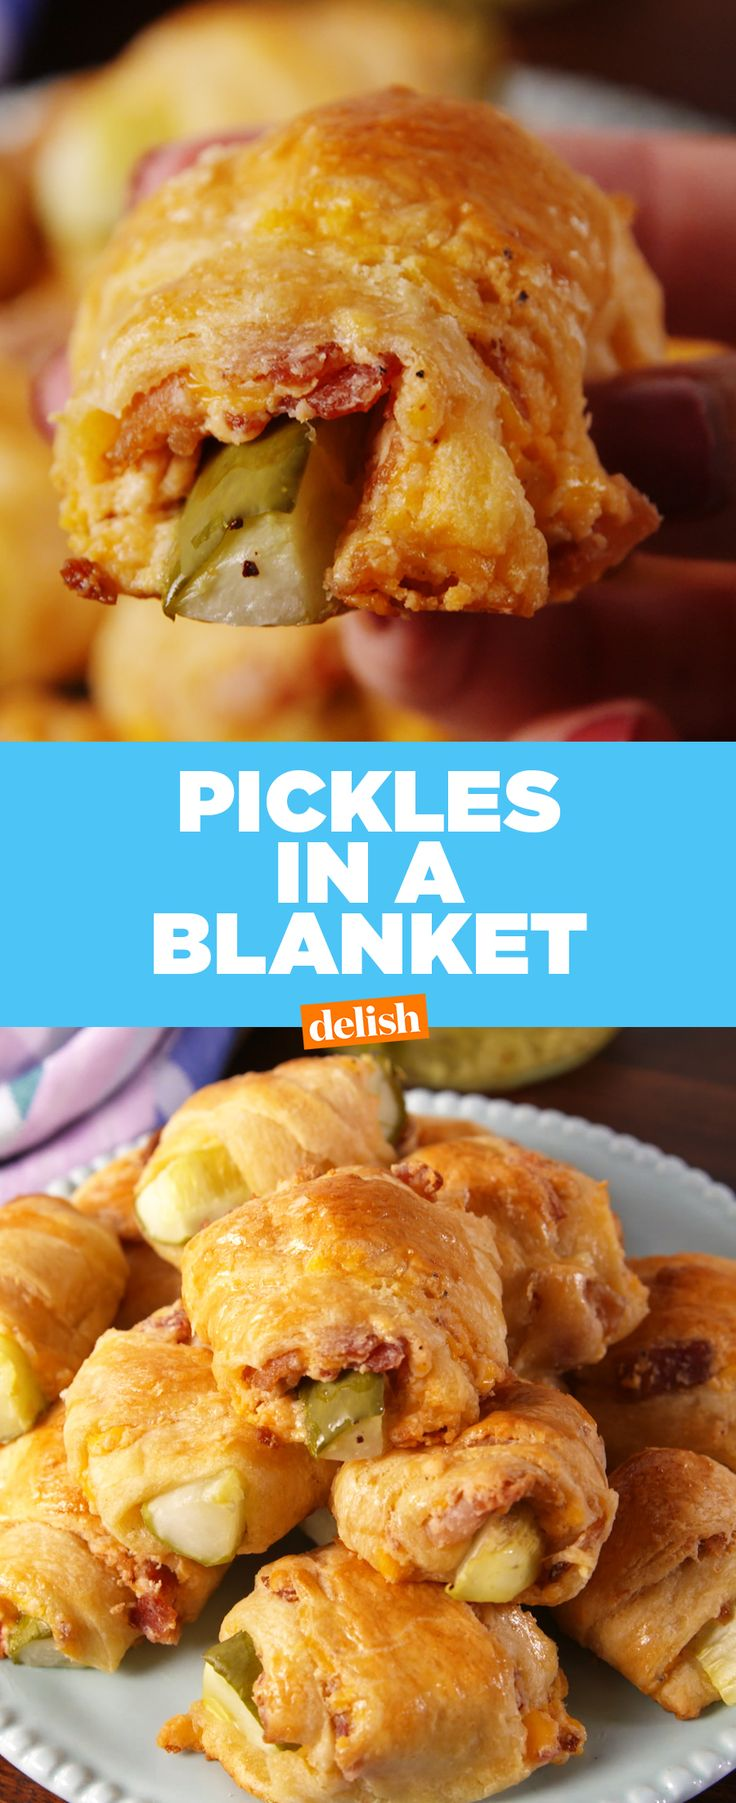 Pickles In A Blanket